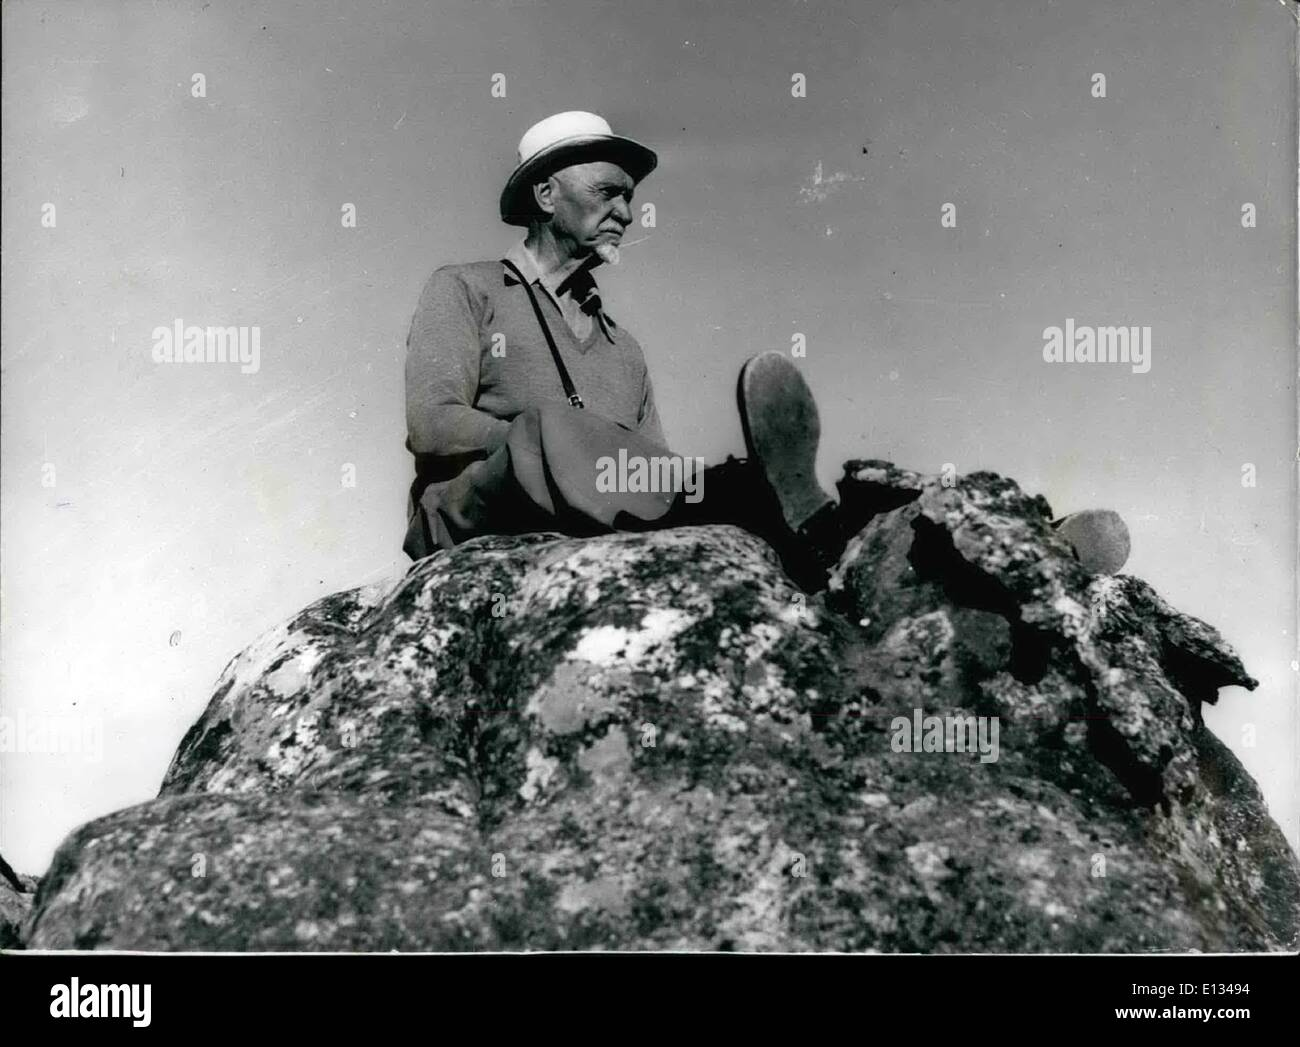 Feb. 28, 2012 - General Smuts on the Table Mountain... Awaiting the King and Queen During Royal Tour... Typical study of the famous South African Prime Minister General Smuts as he takes a rest on the table mountain, Cape Town, while awaiting the arrival of the King and Queen during one of their sight seeing tours during the South African visit. - Stock Image